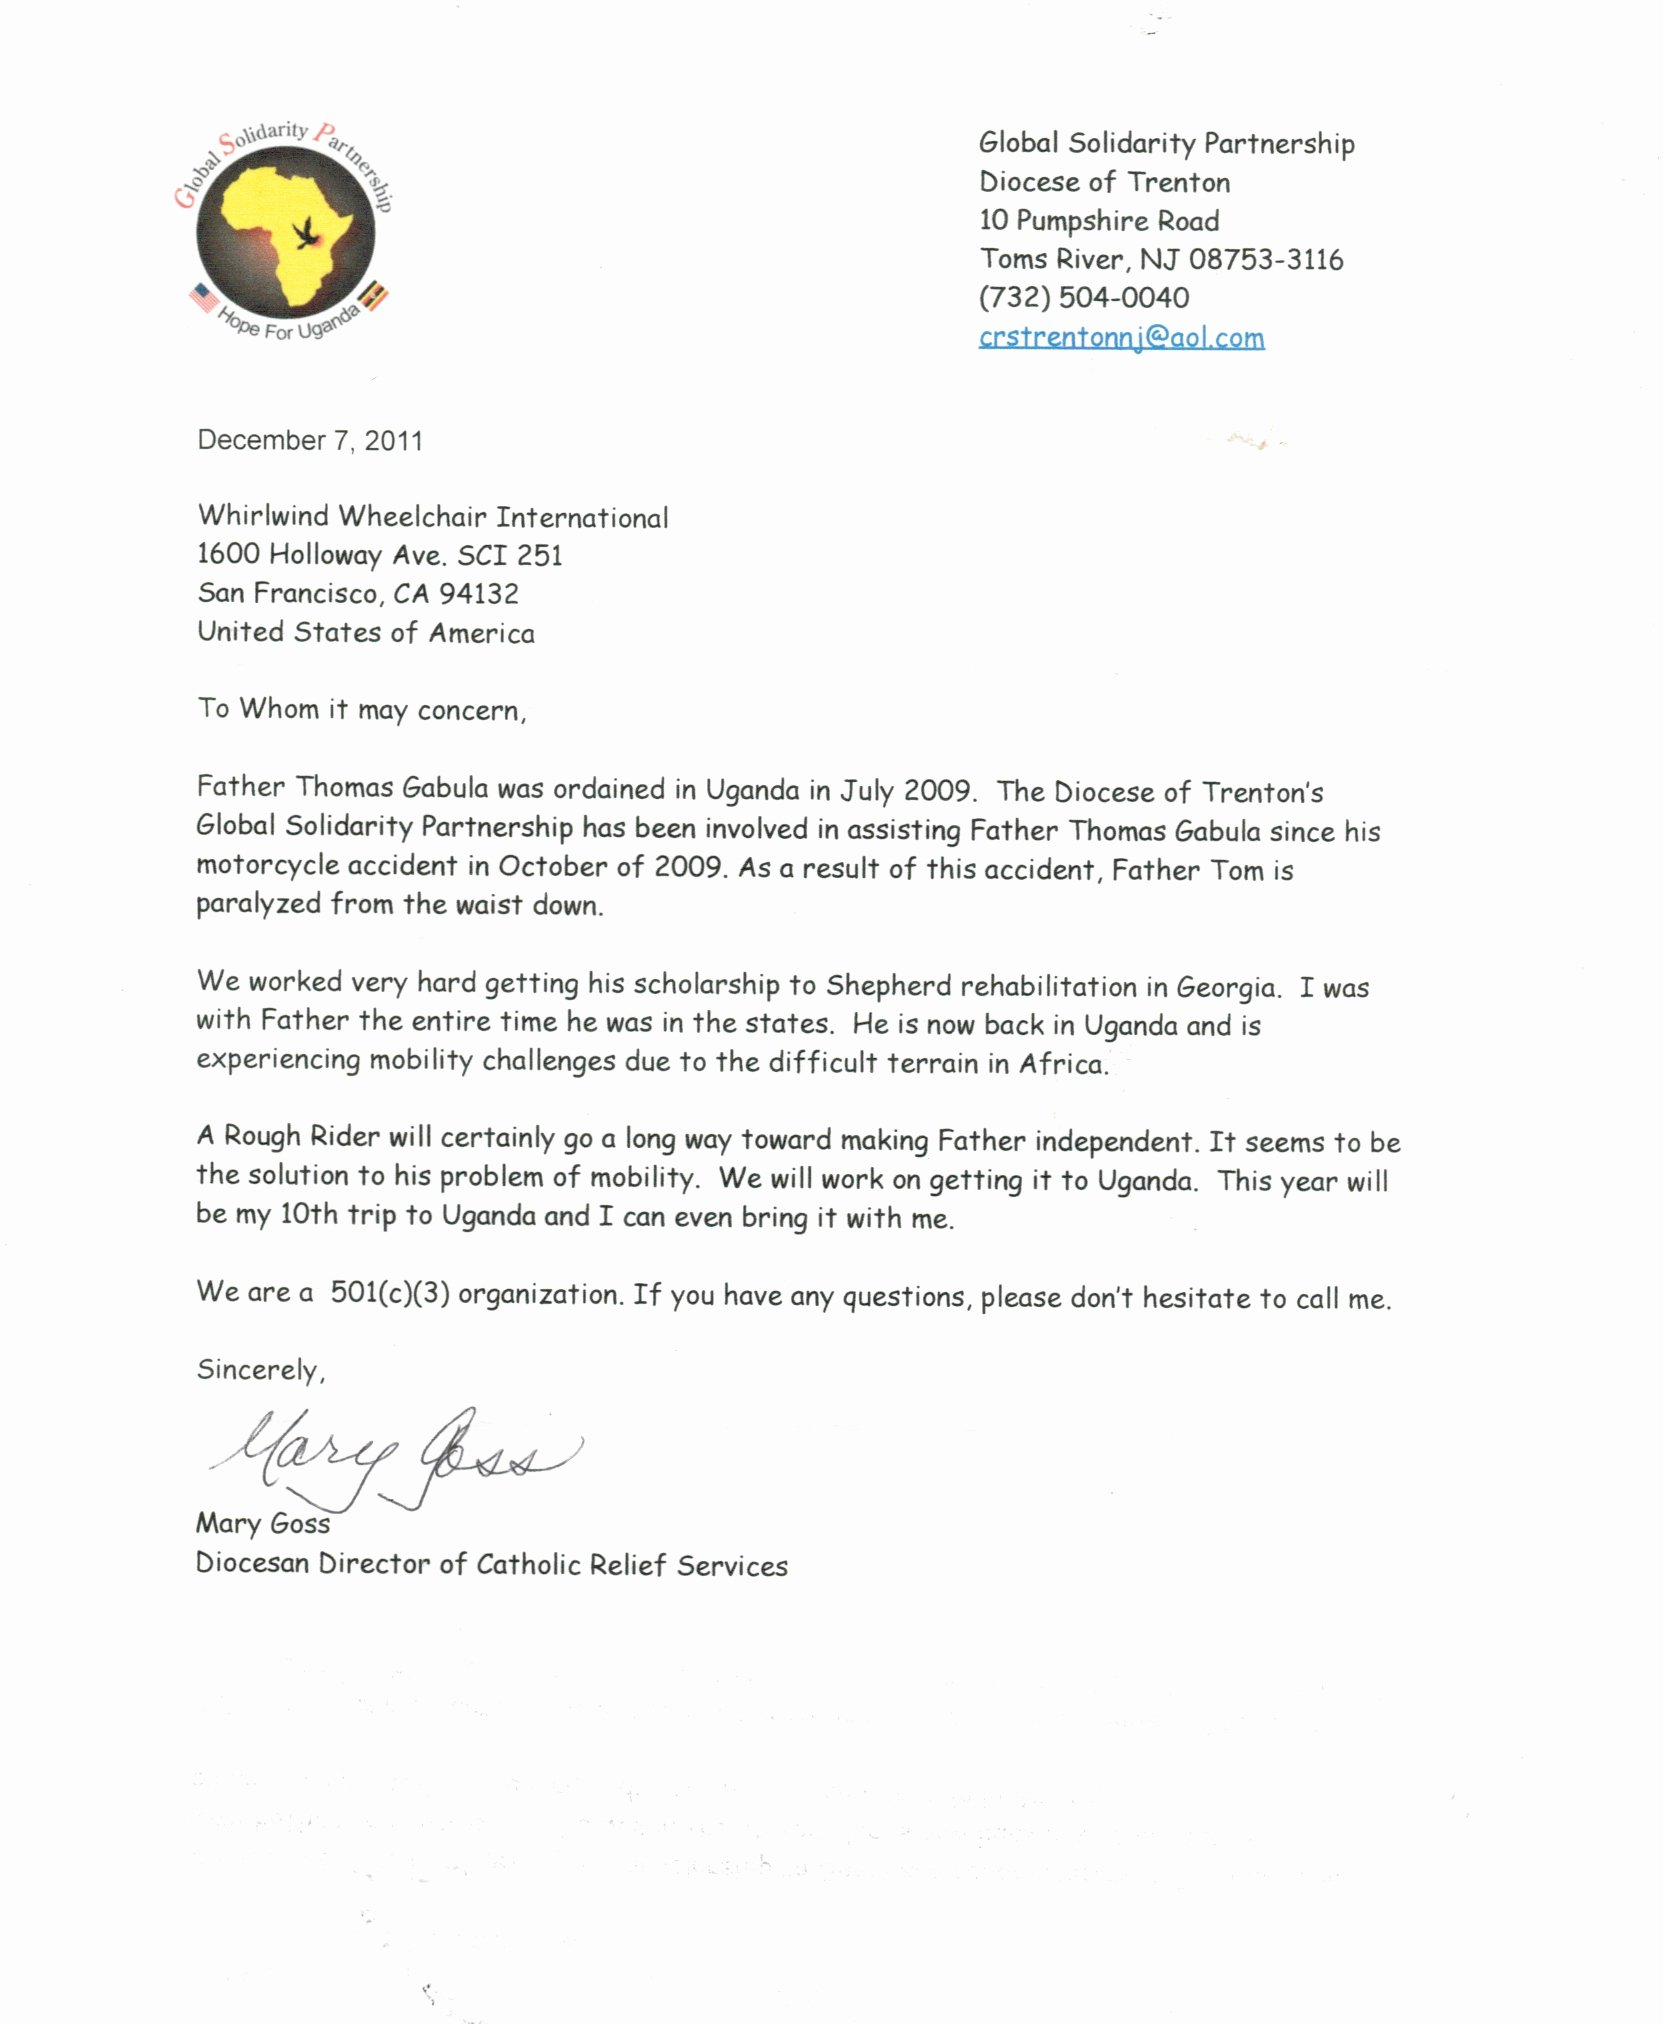 Missions Trip Support Letter Template Inspirational Mission Trip Support Letter